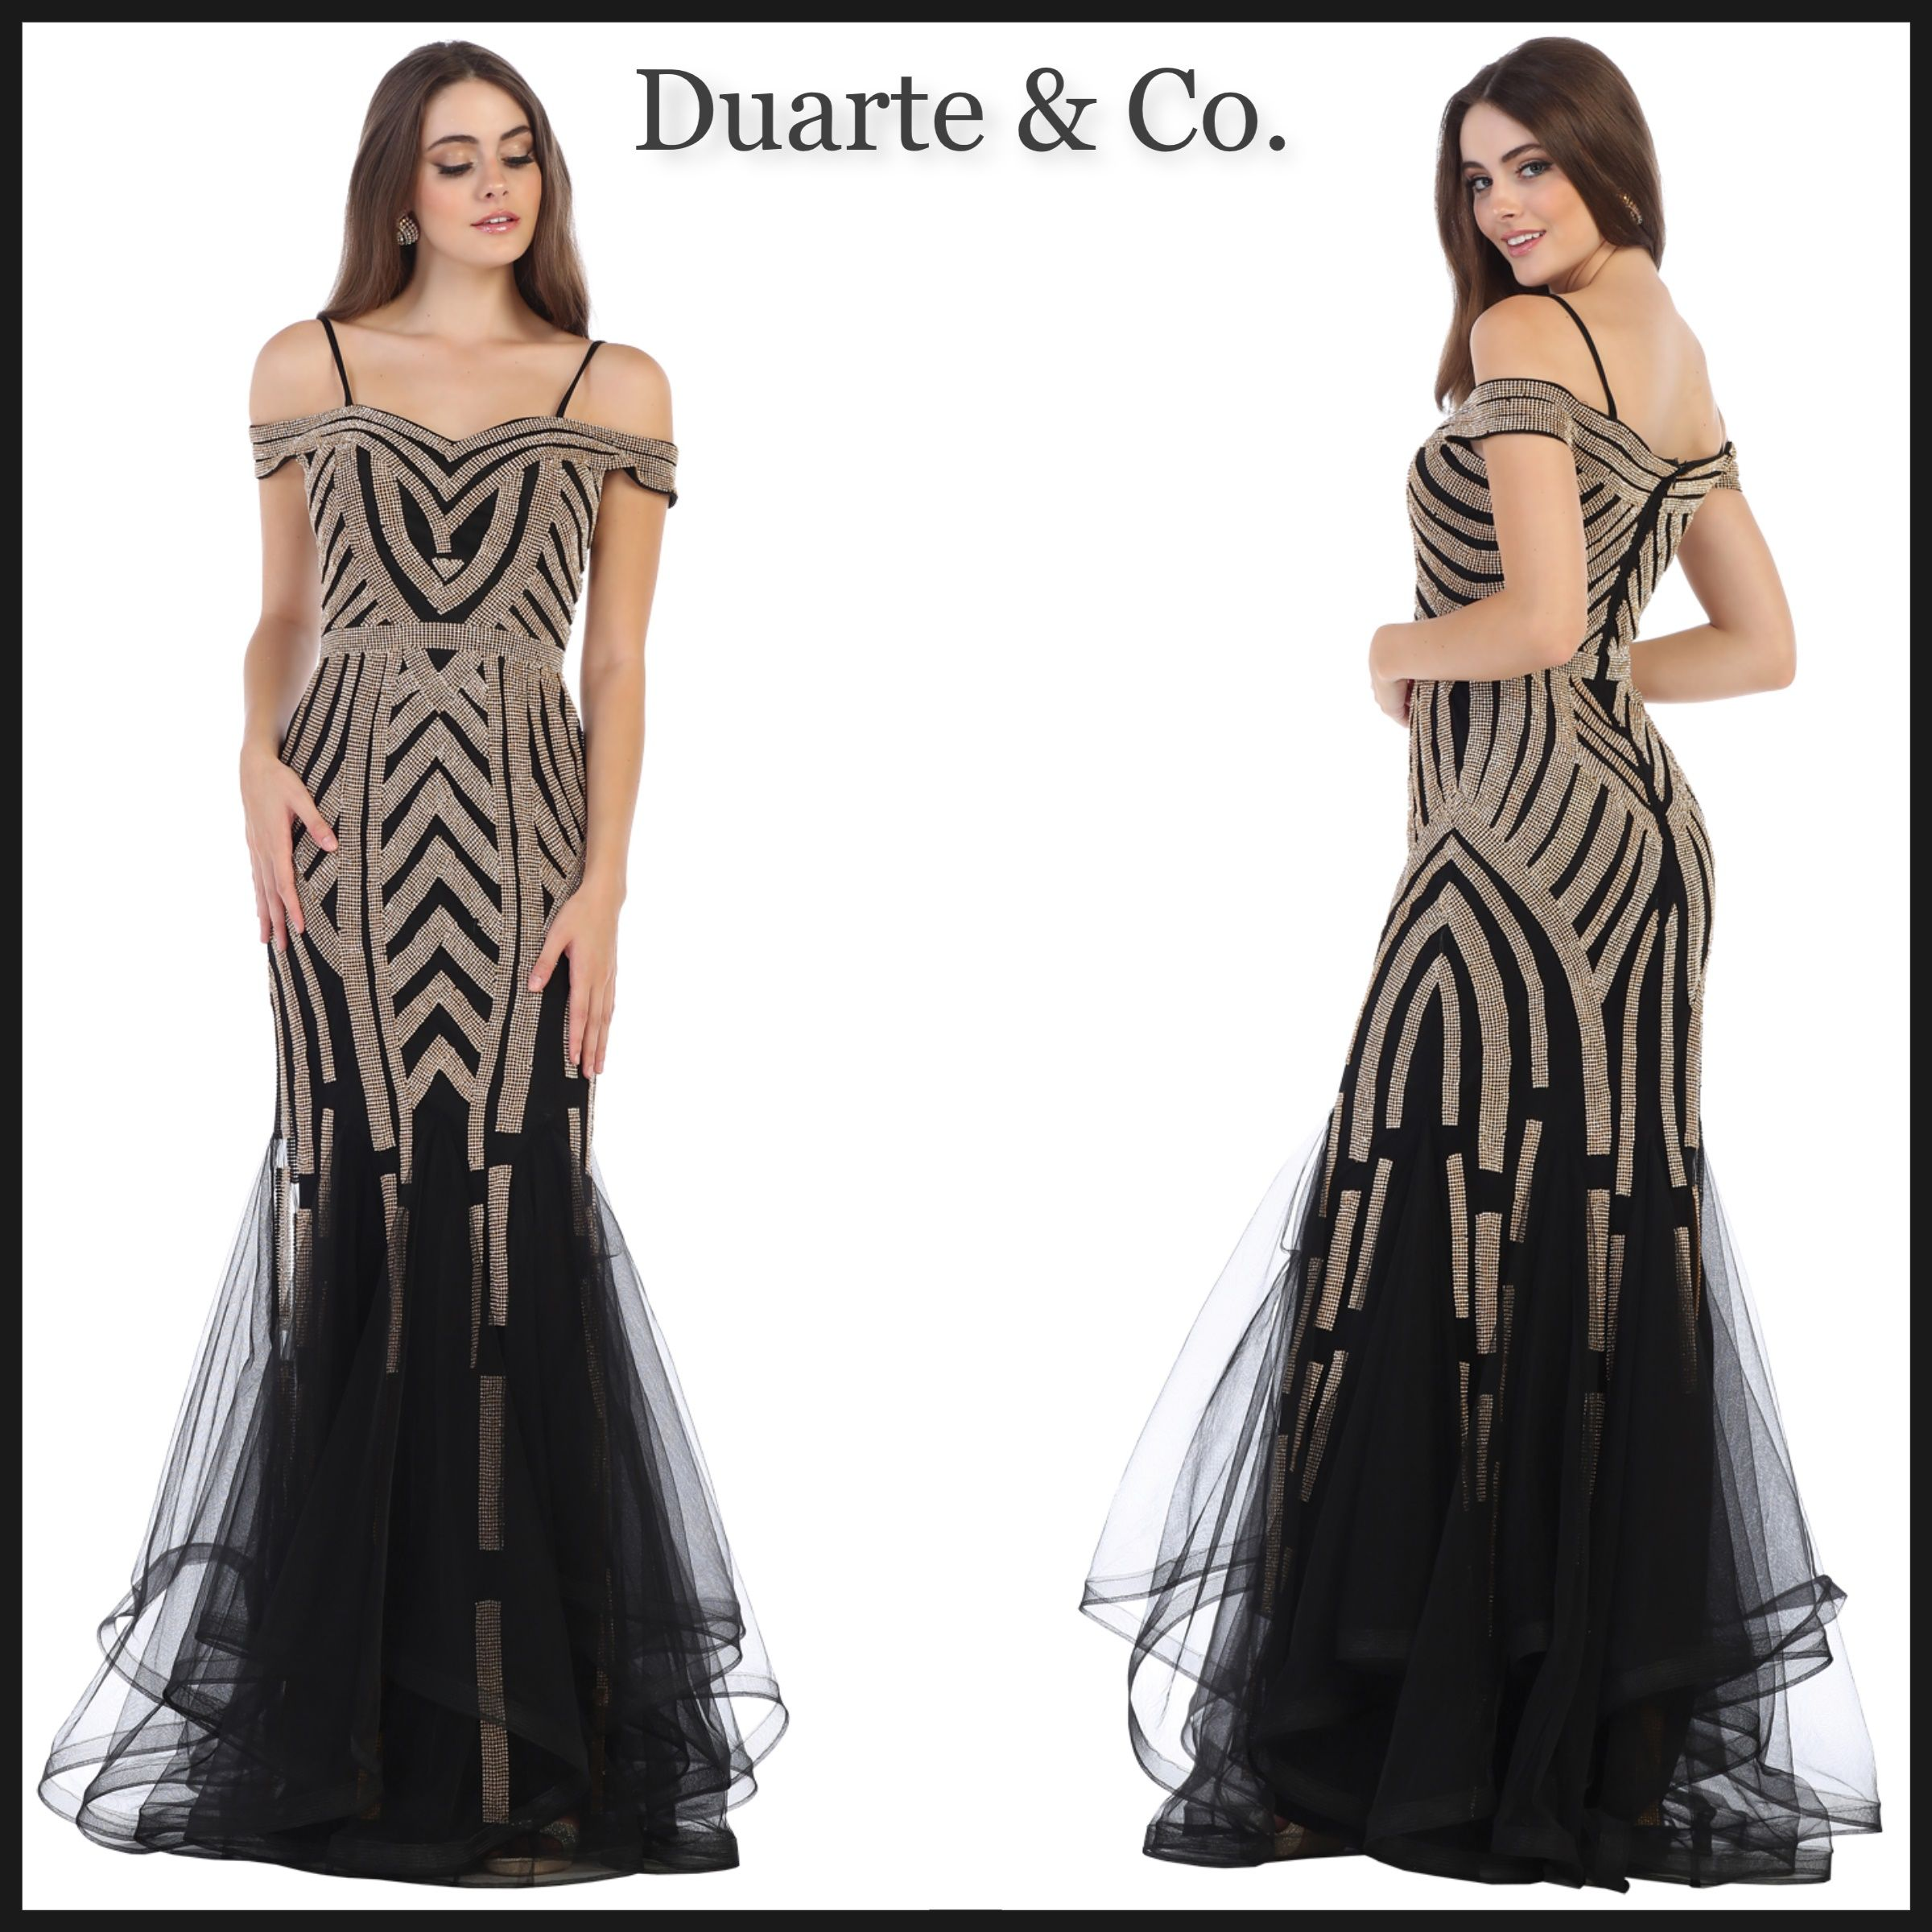 Cold shoulder party dress wplus sizes dc prom ball gowns